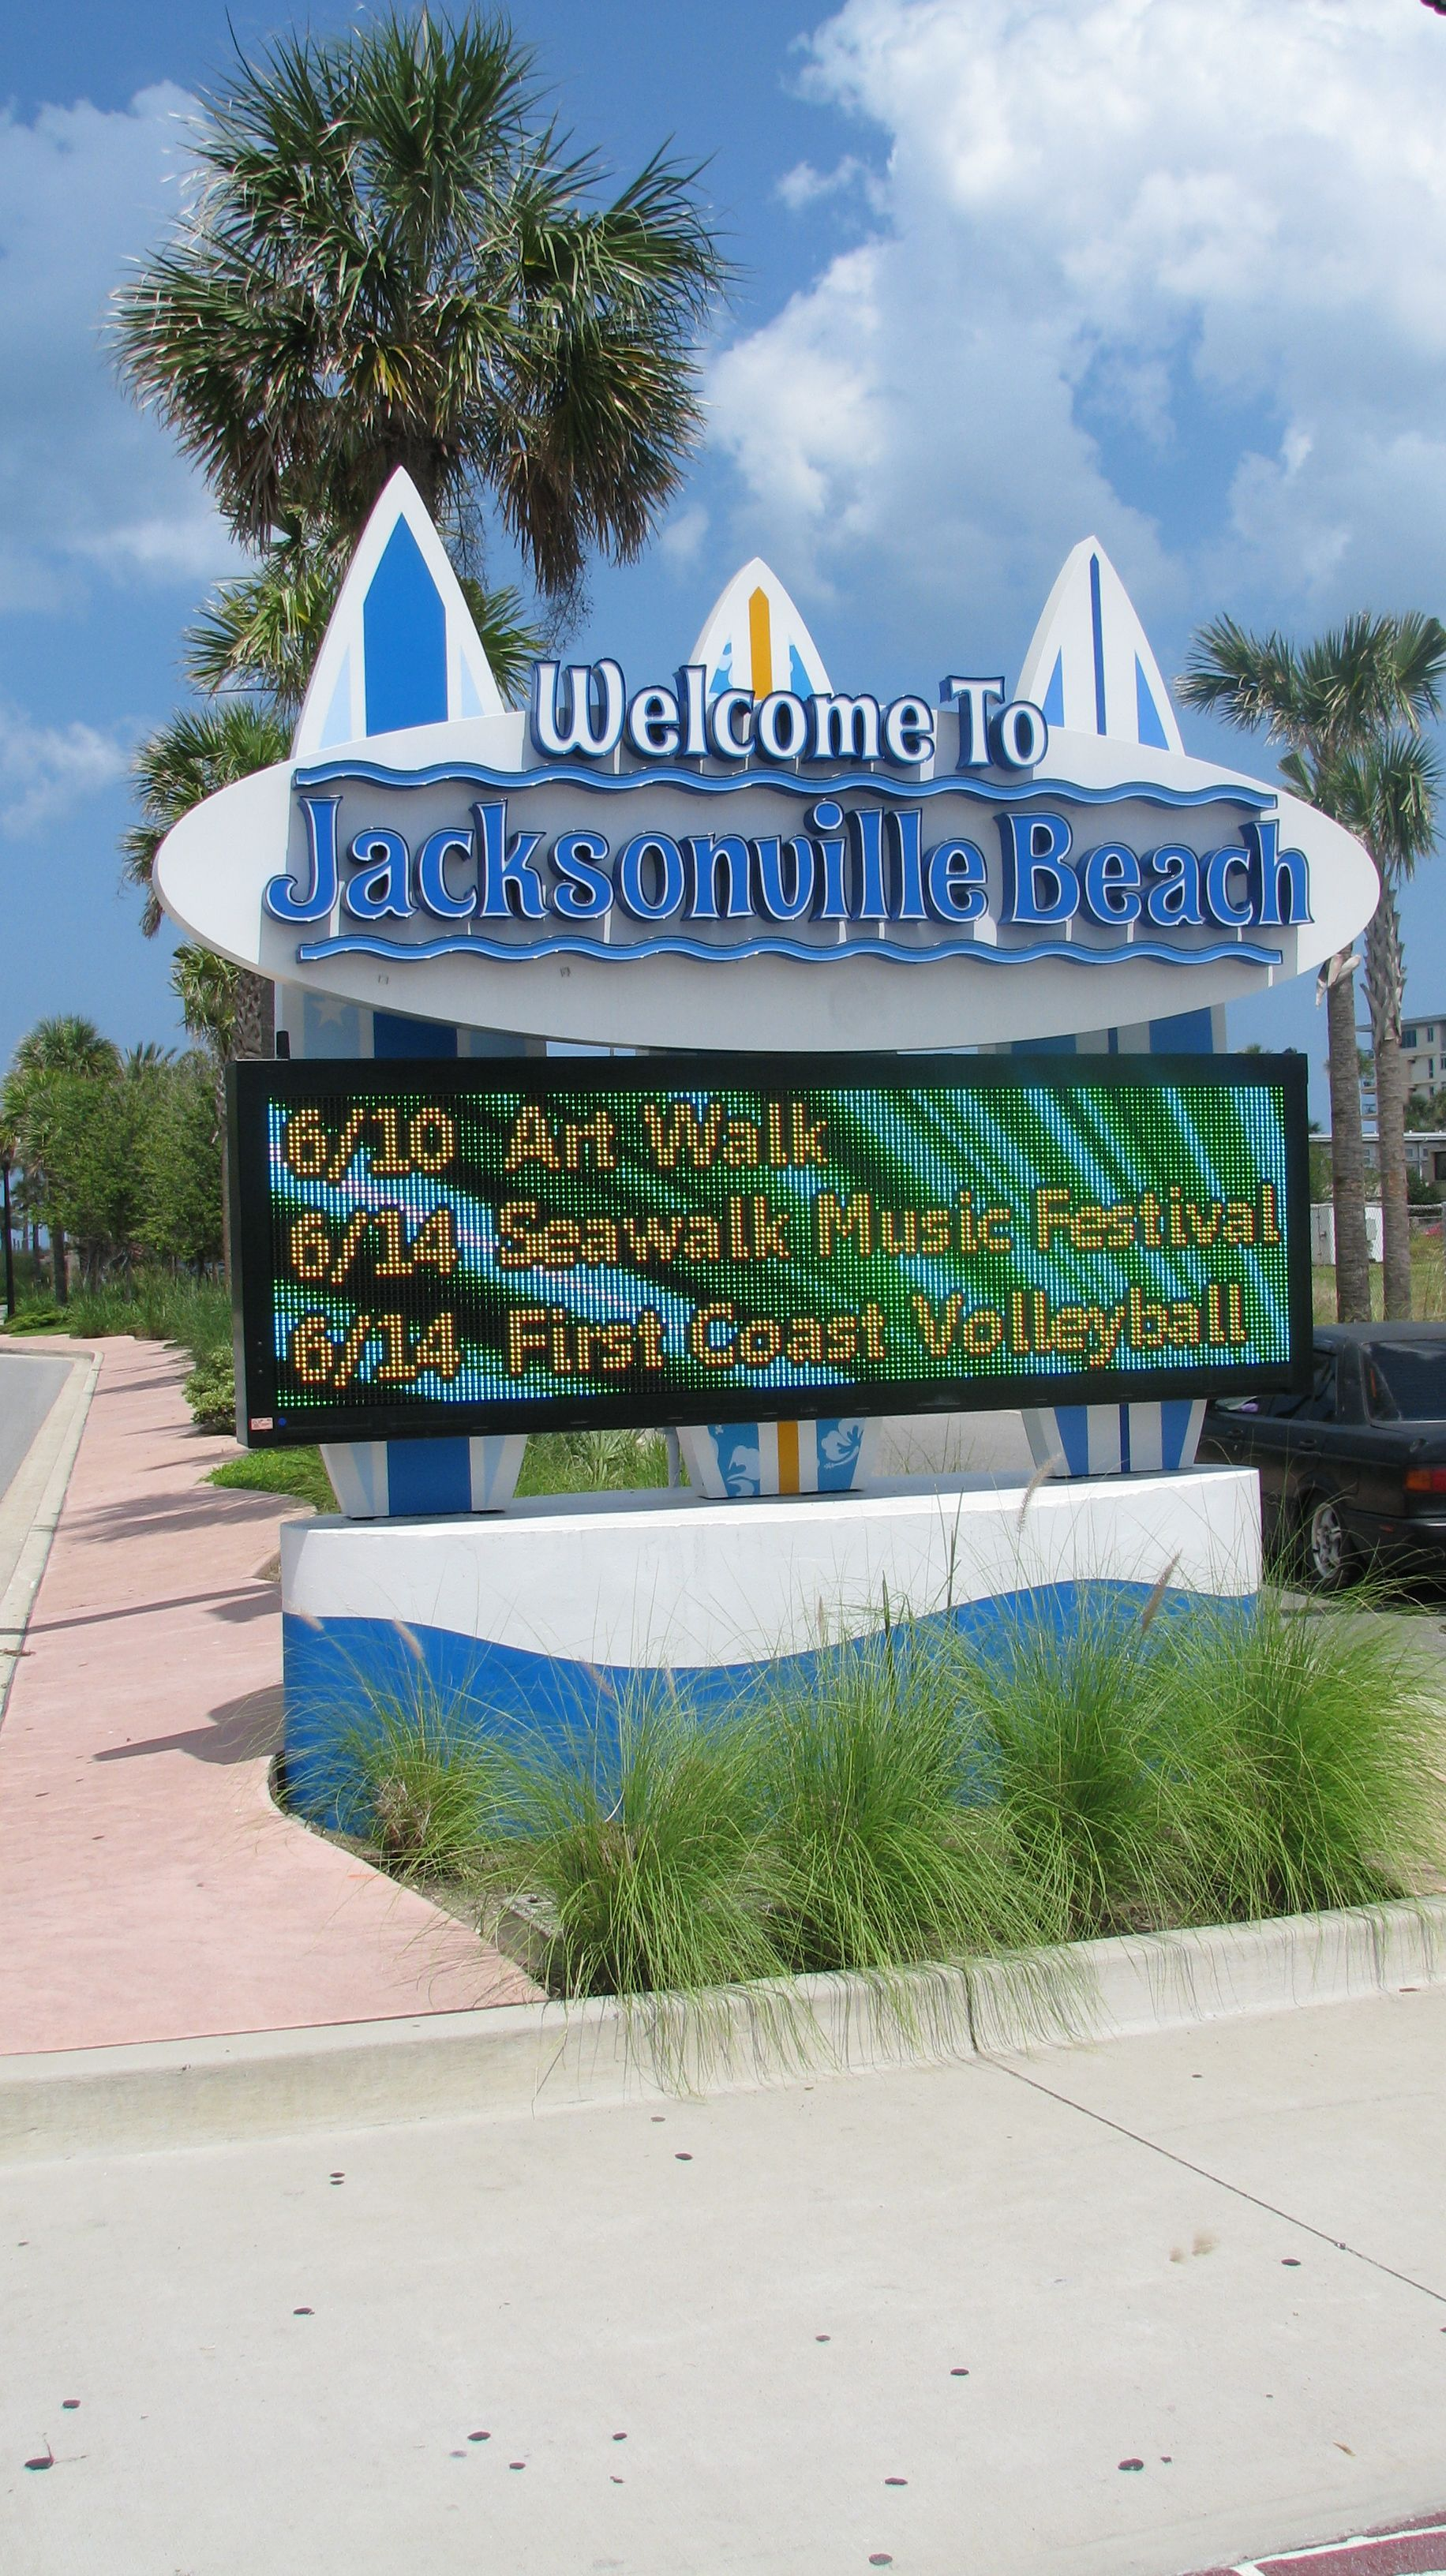 welcome to Jacksonville Beach